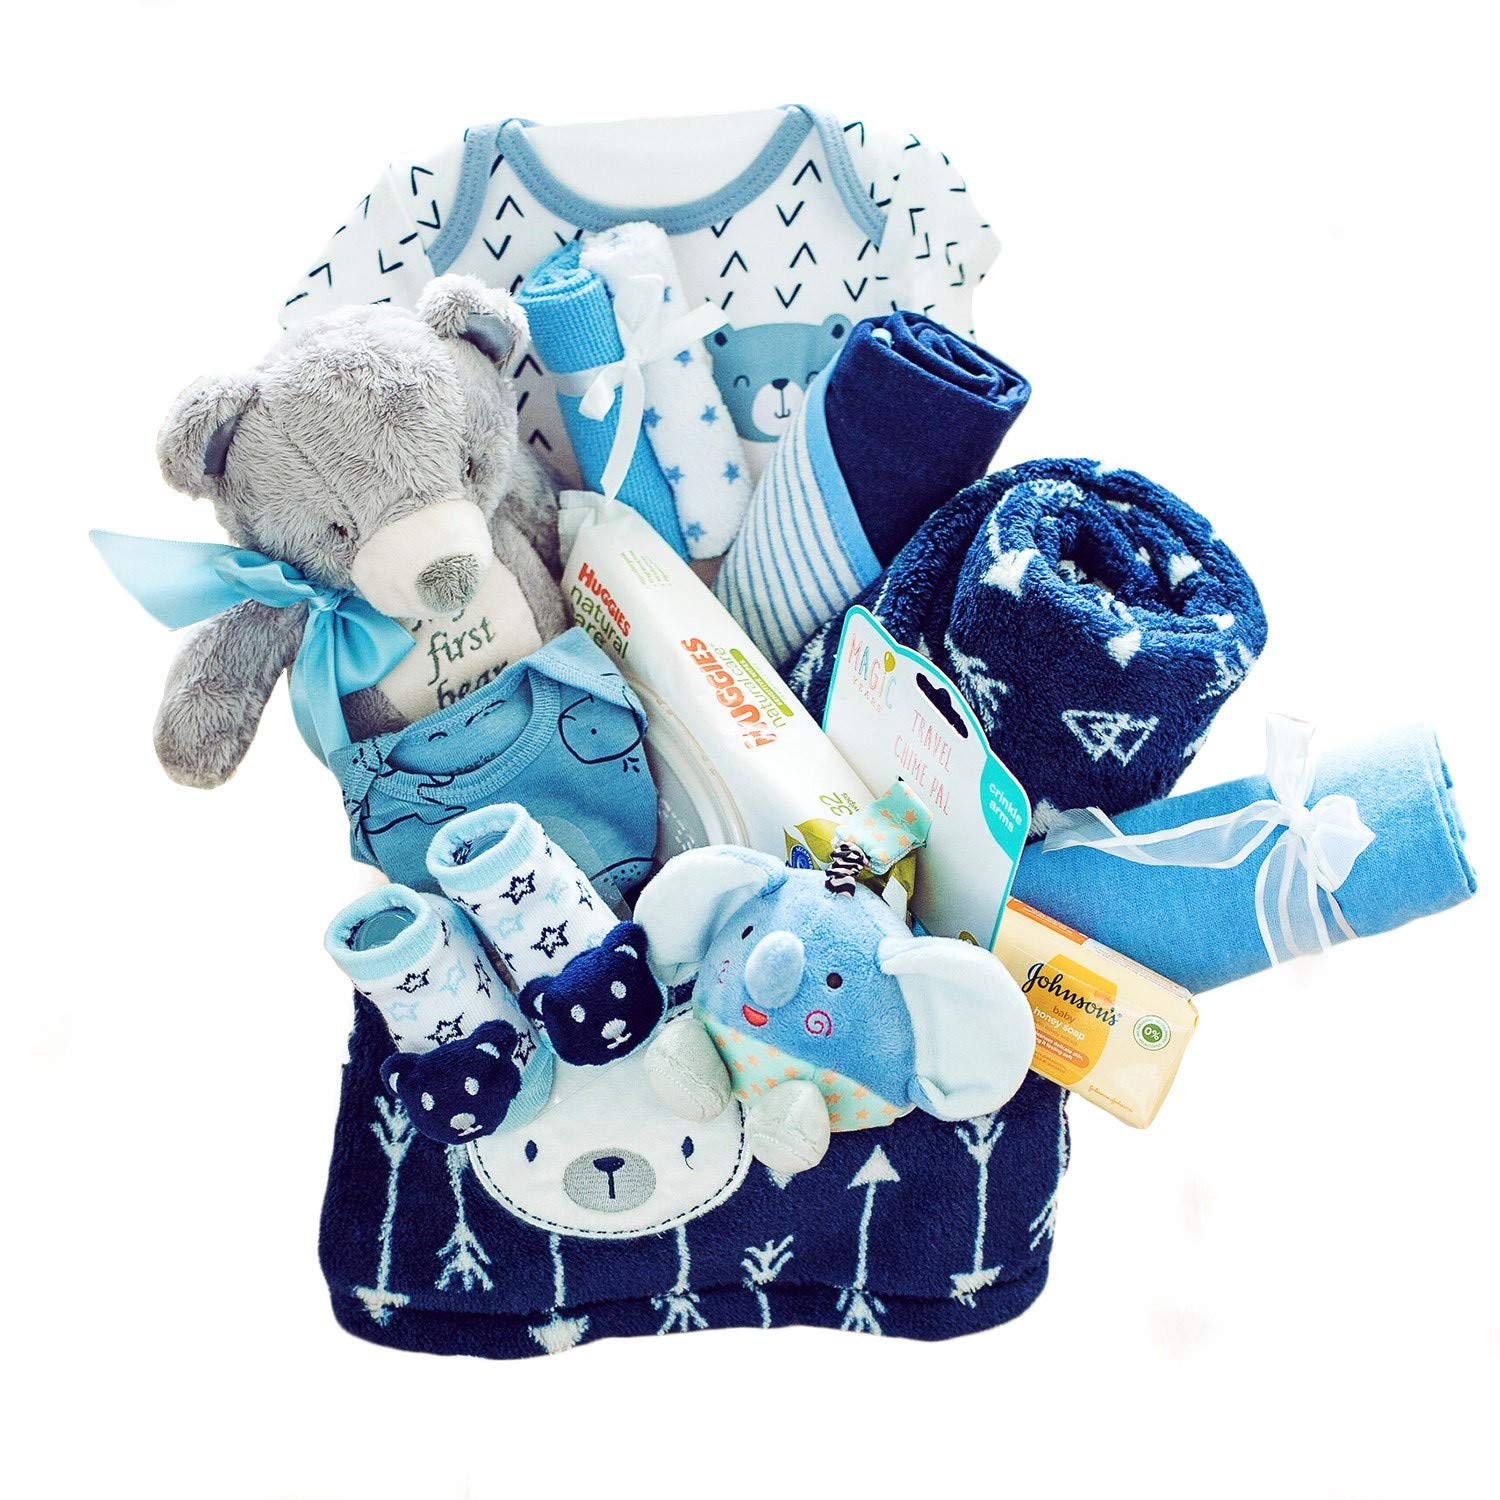 Baby Gift Basket - Newborn Essentials Baby Gift Set Great for Baby Shower and Welcome Baby Home - Baby Boys Gifts